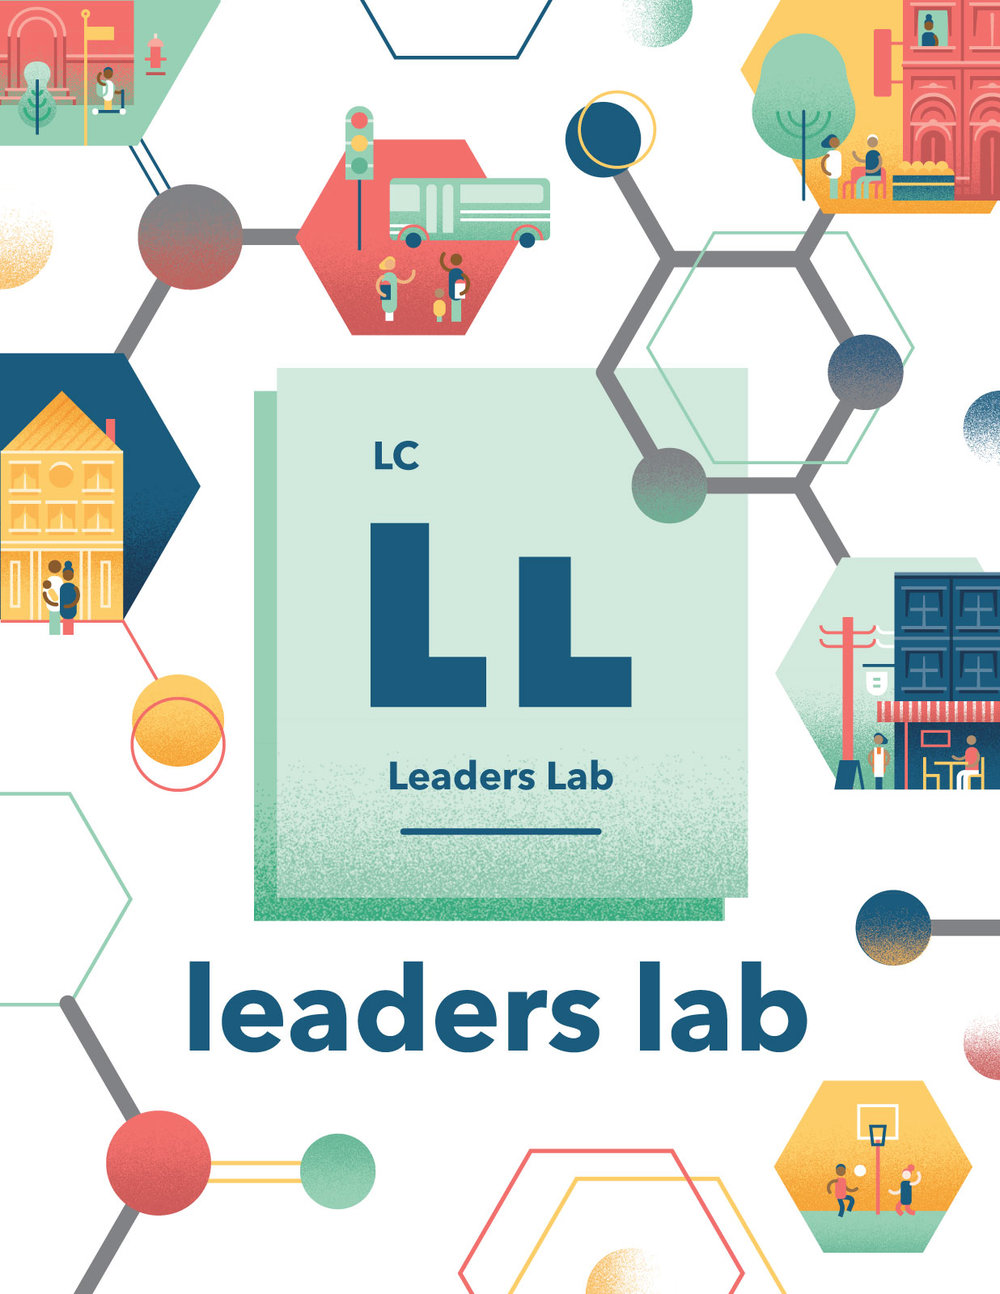 FCS-Leaders-Lab-concepts-03.jpg